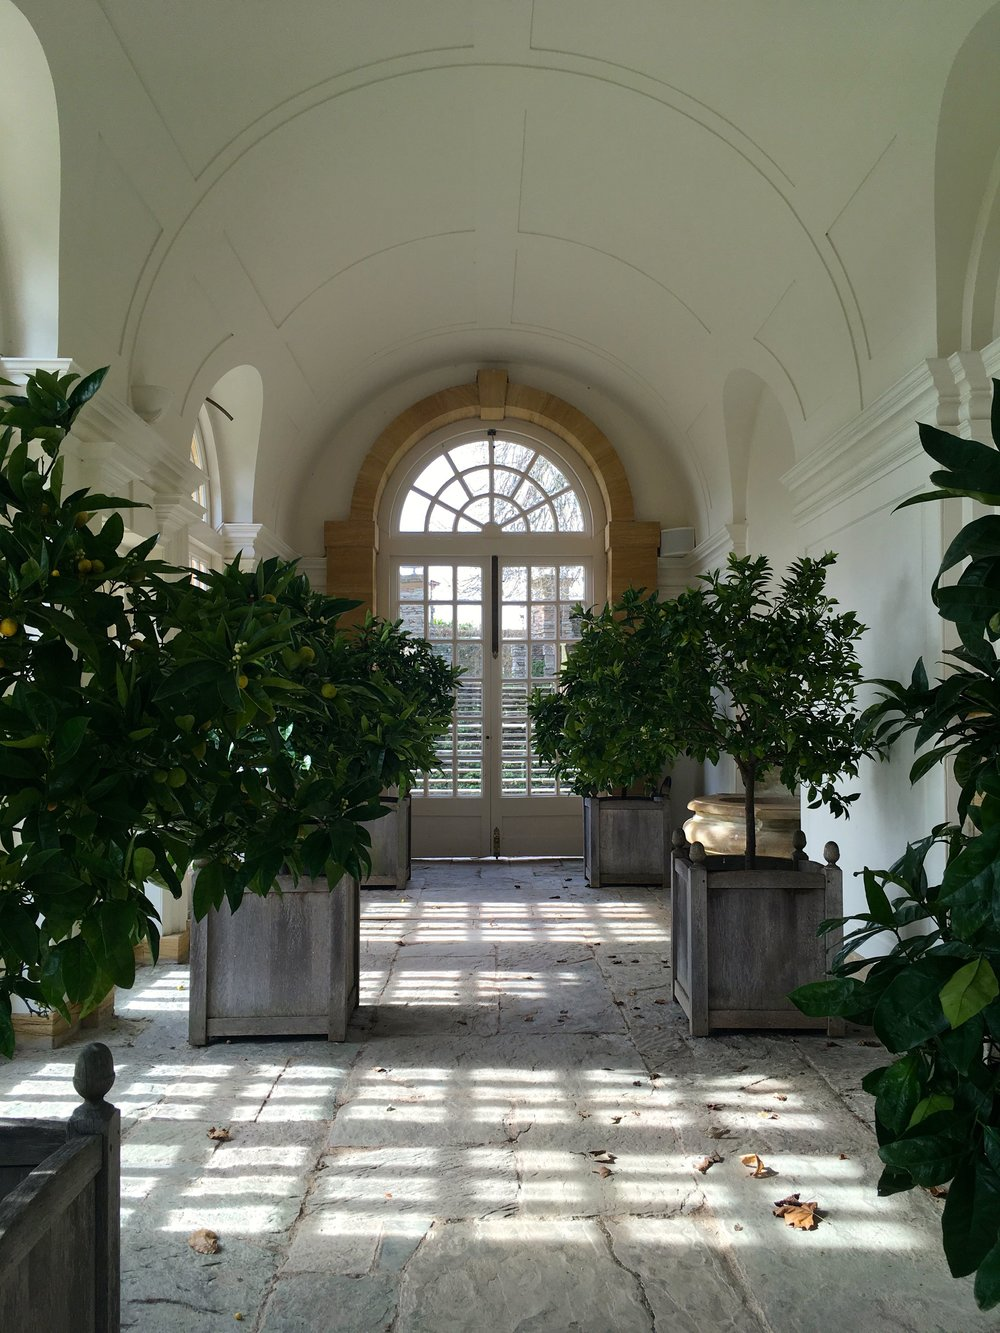 heading inside the orangery